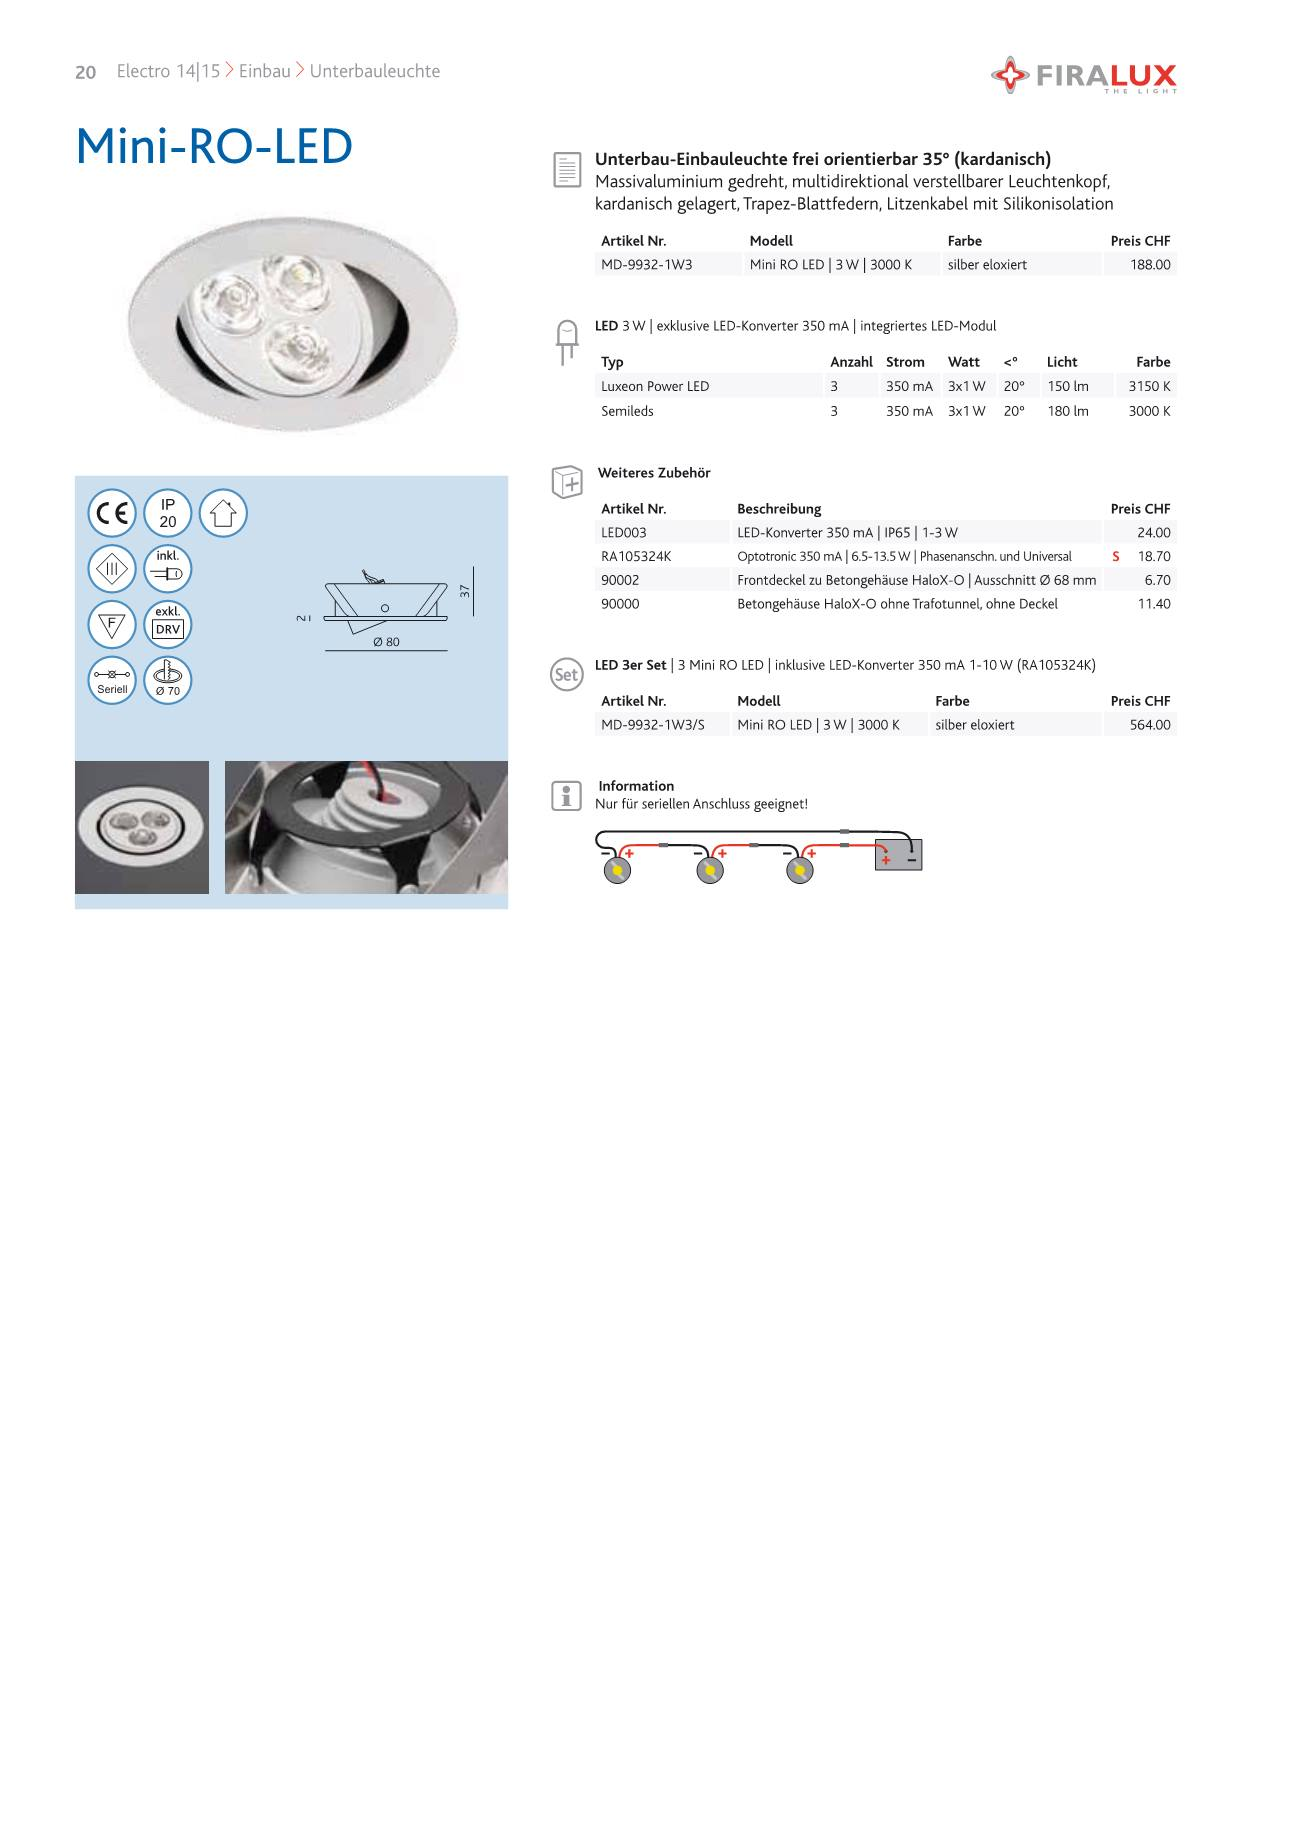 Led Unterbauleuchte Ip54 Index Of Images Katalog Electro De Files Assets Mobile Pages